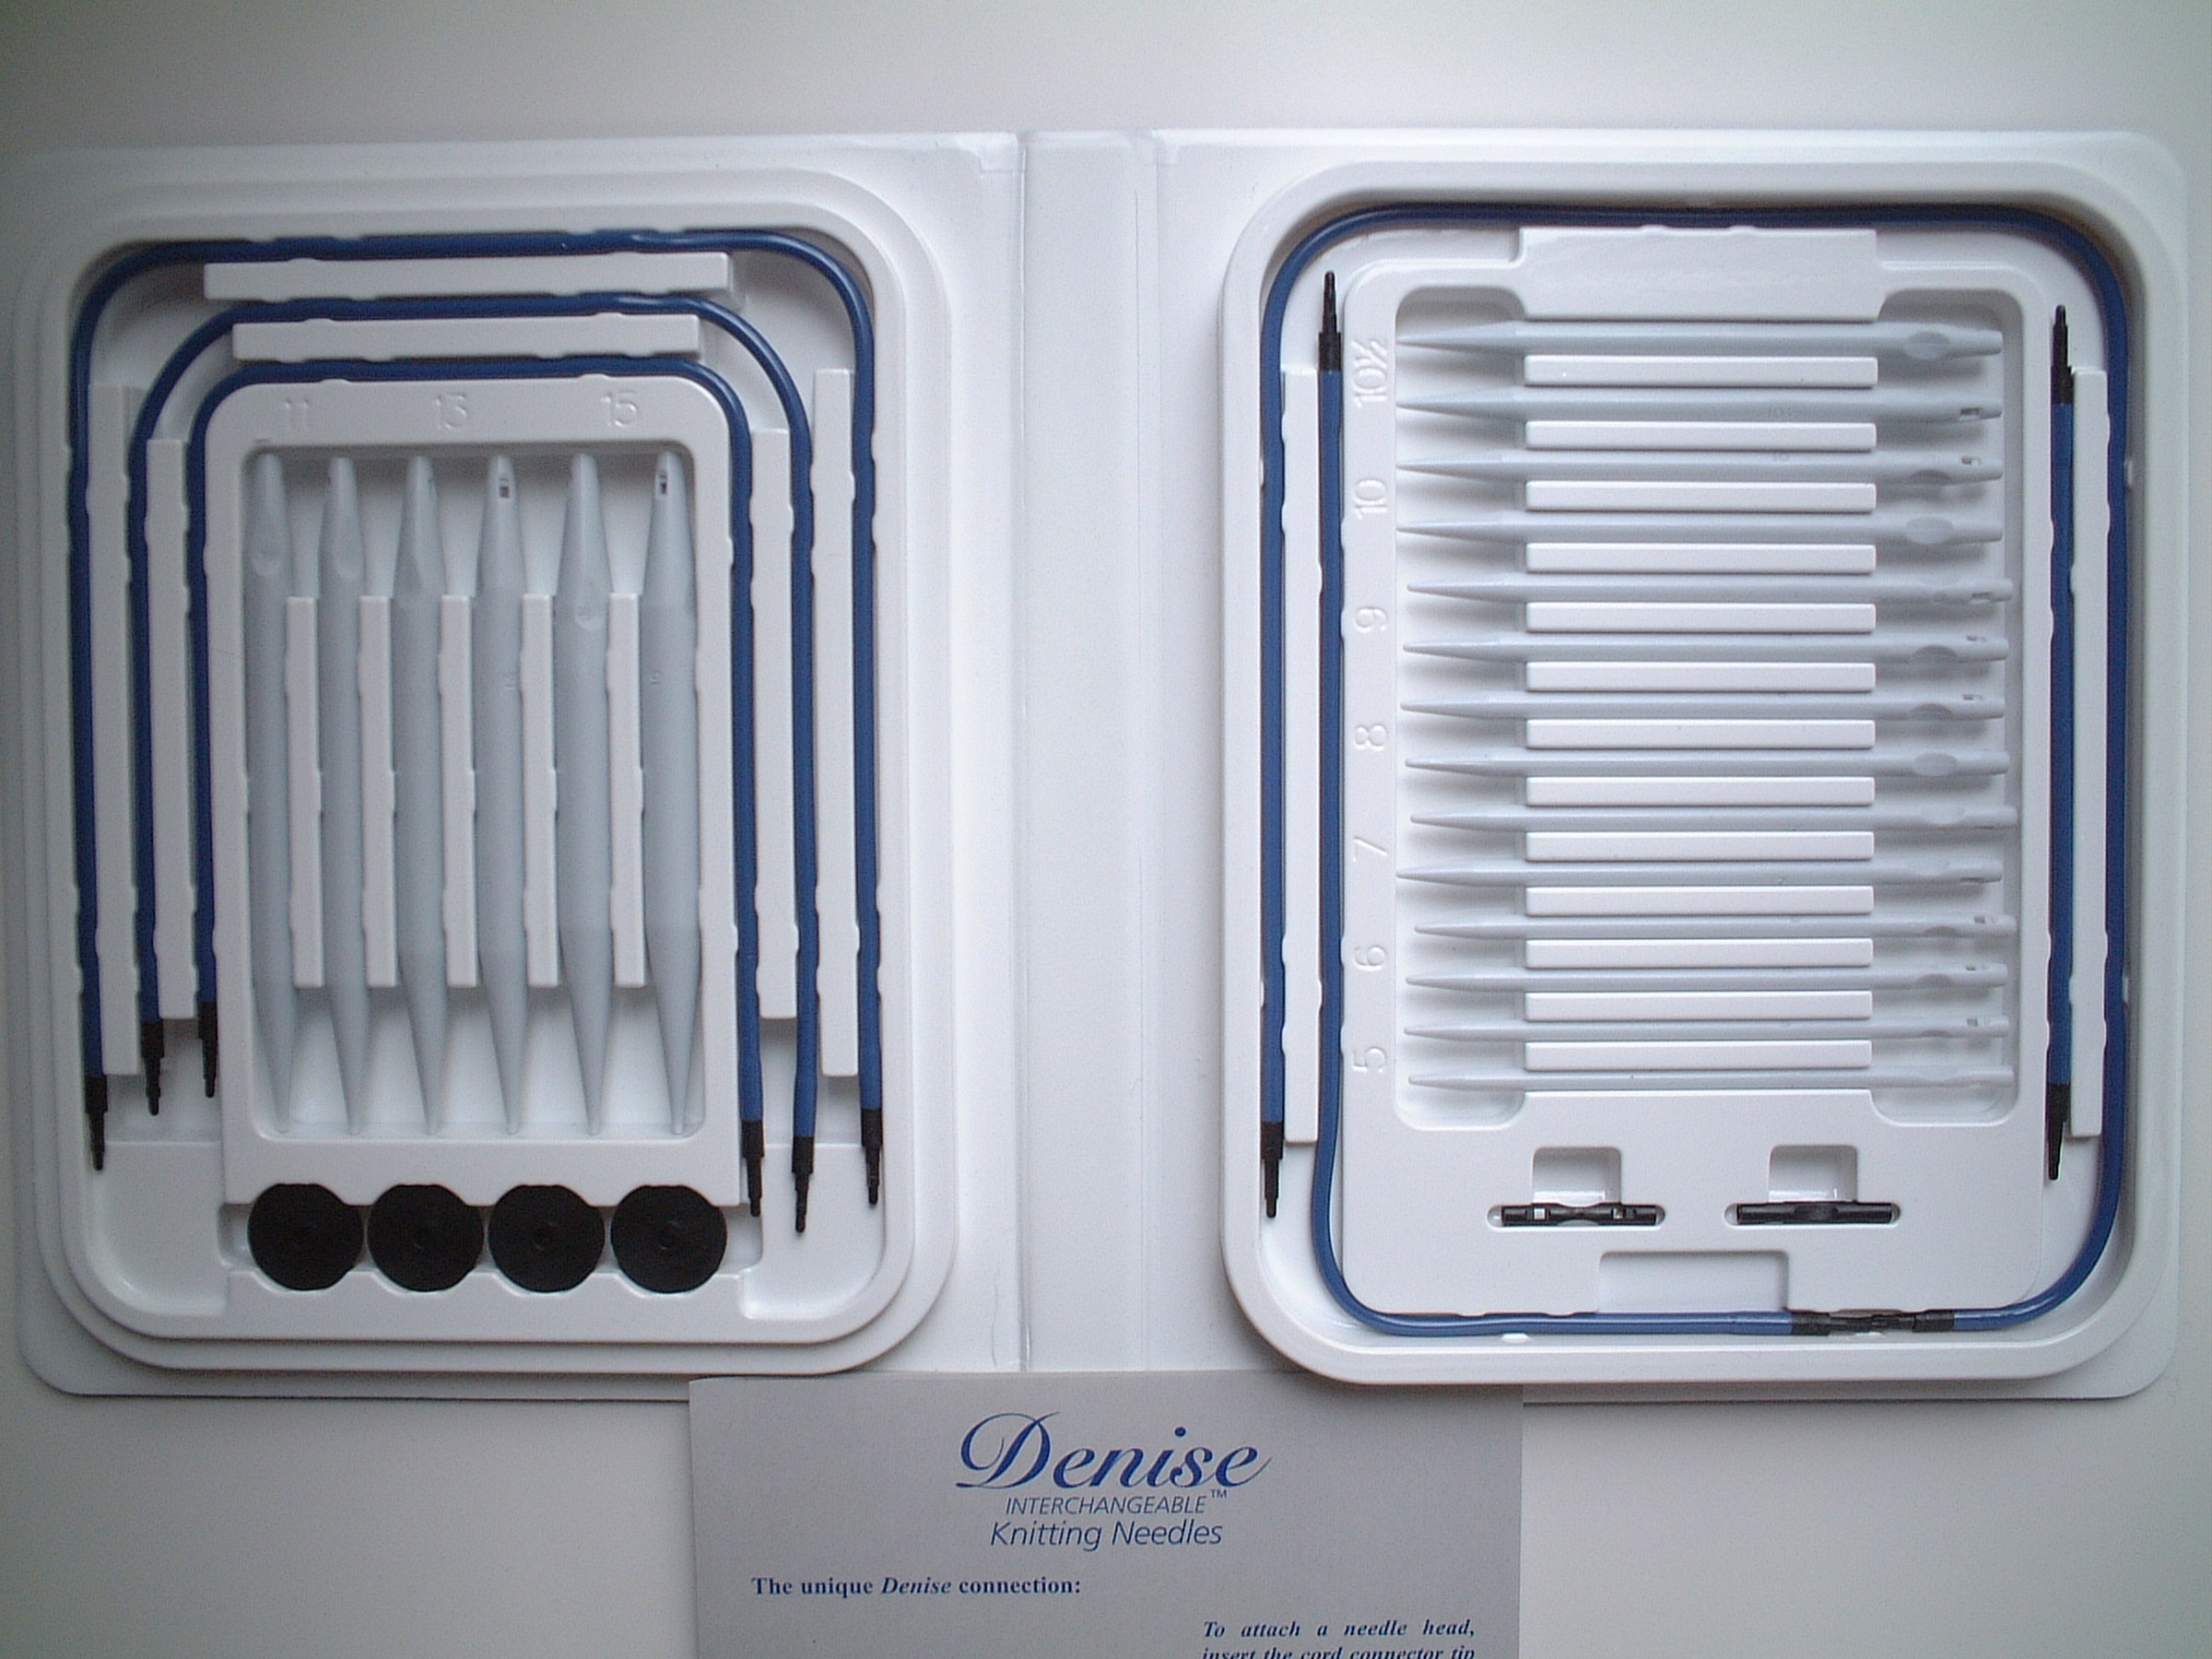 Denise interchangeable knitting needles, knitting supplies, Denise knitting needles, circular, interchangeable knitting needles